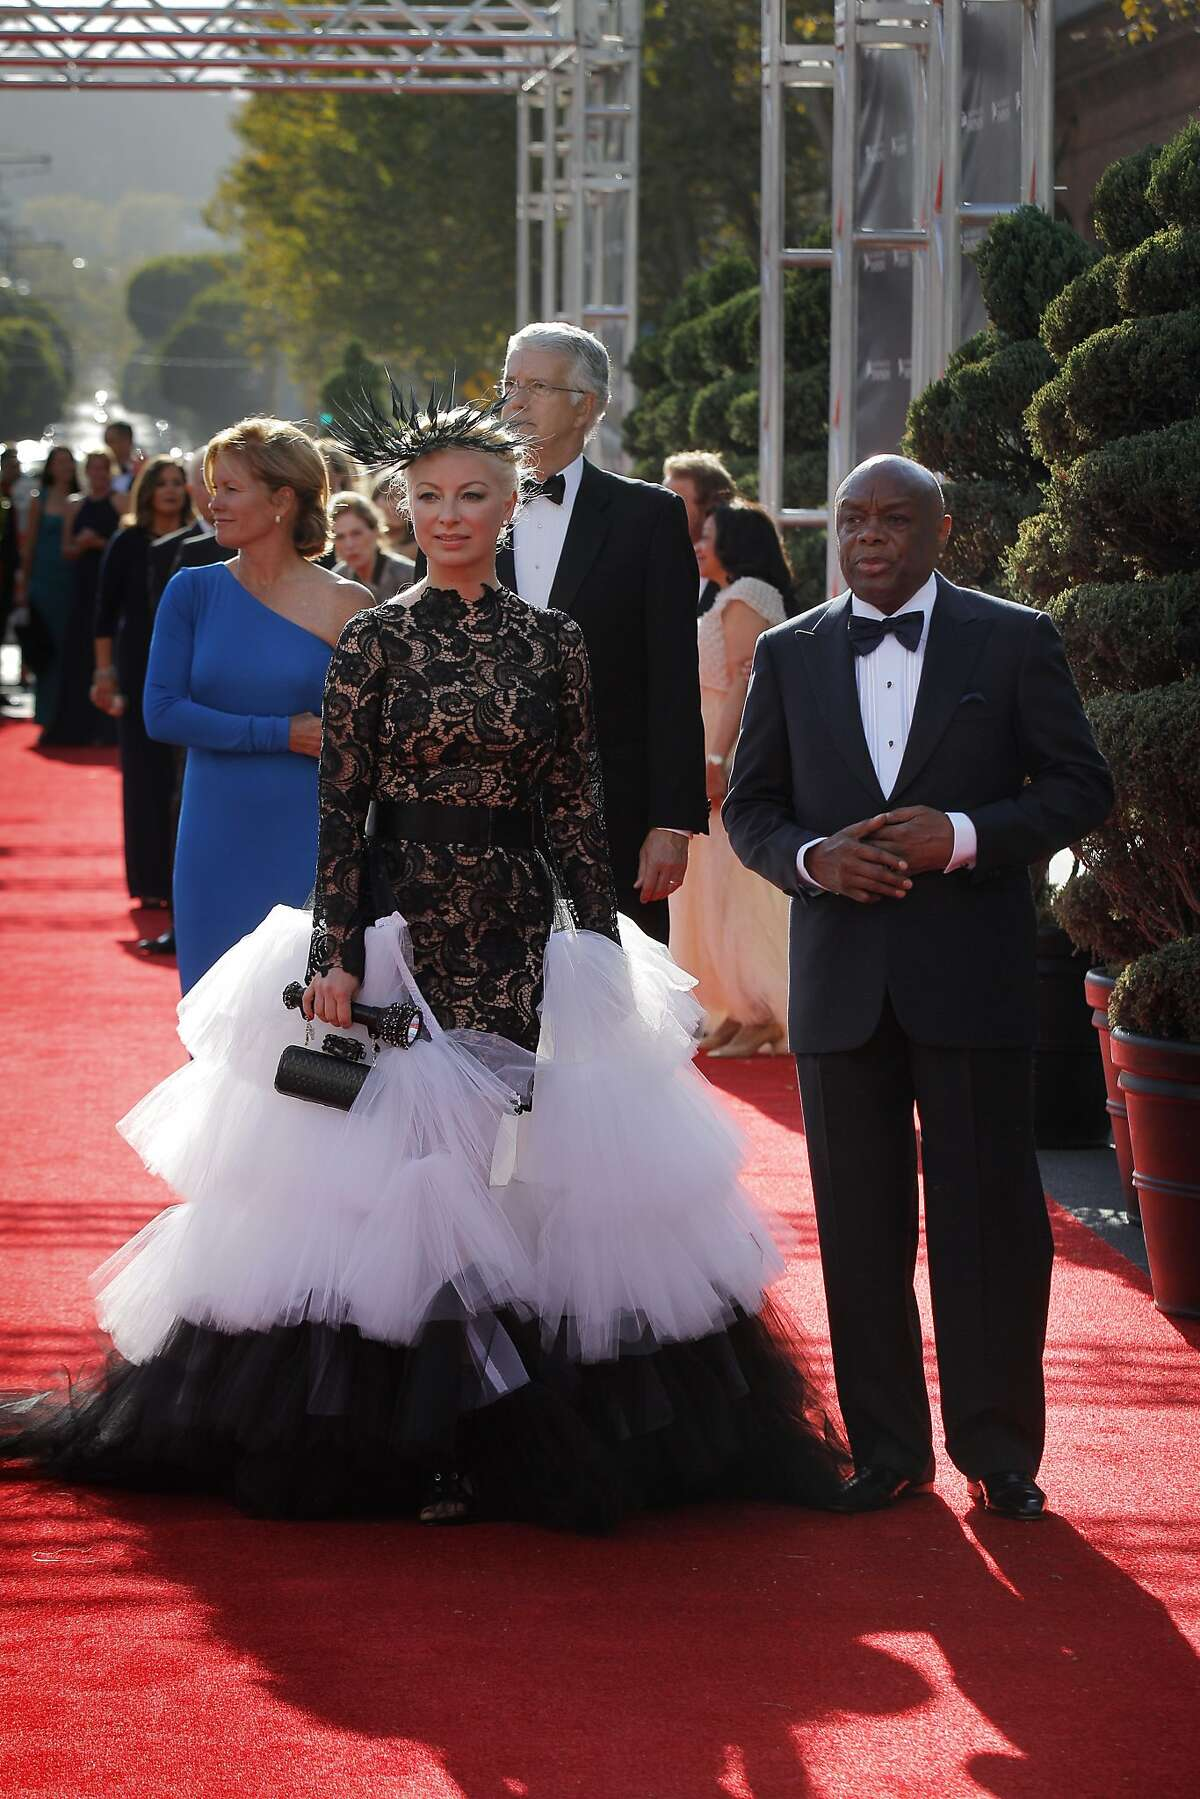 Former San Francisco Mayor, Willie Brown, right, arrives on the red carpet with Sonya Molodetskaya, left, at the San Francisco Symphony Gala at Davies Symphony Hall in San Francisco, Calif., on Wednesday, September 3, 2014.